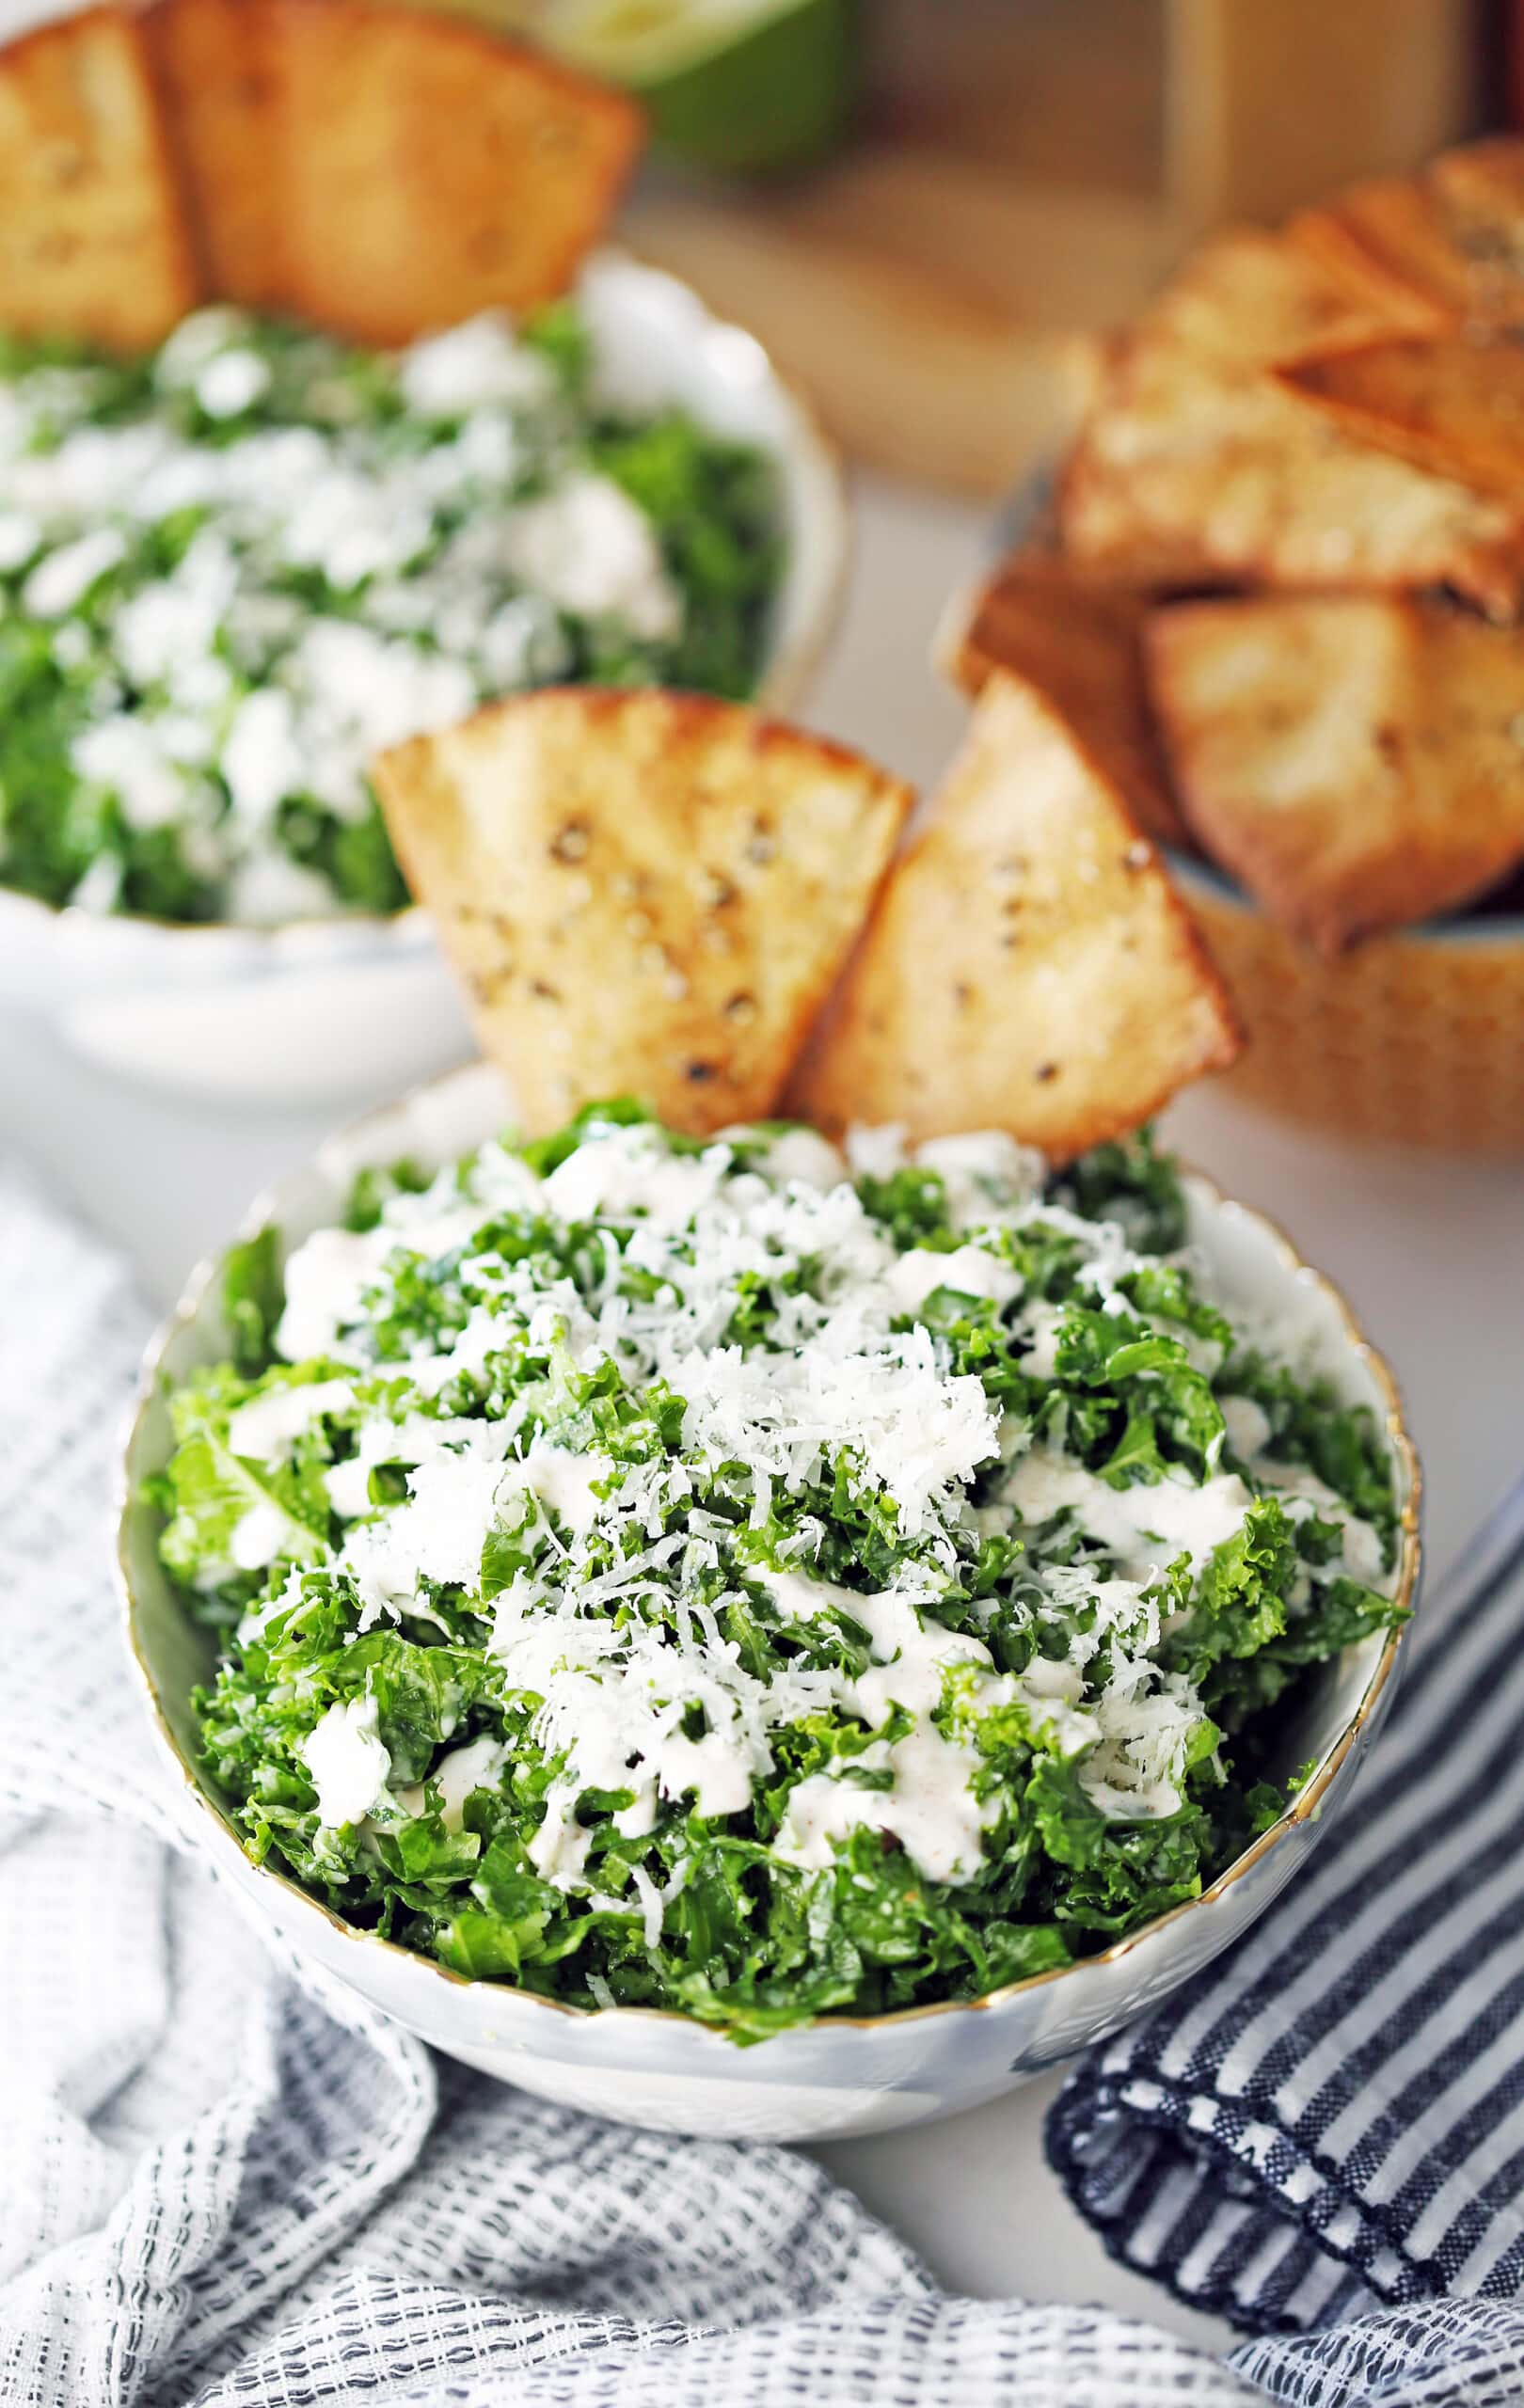 A bowl full of kale salad with parmesan, garlic lime dressing, and pita chips.